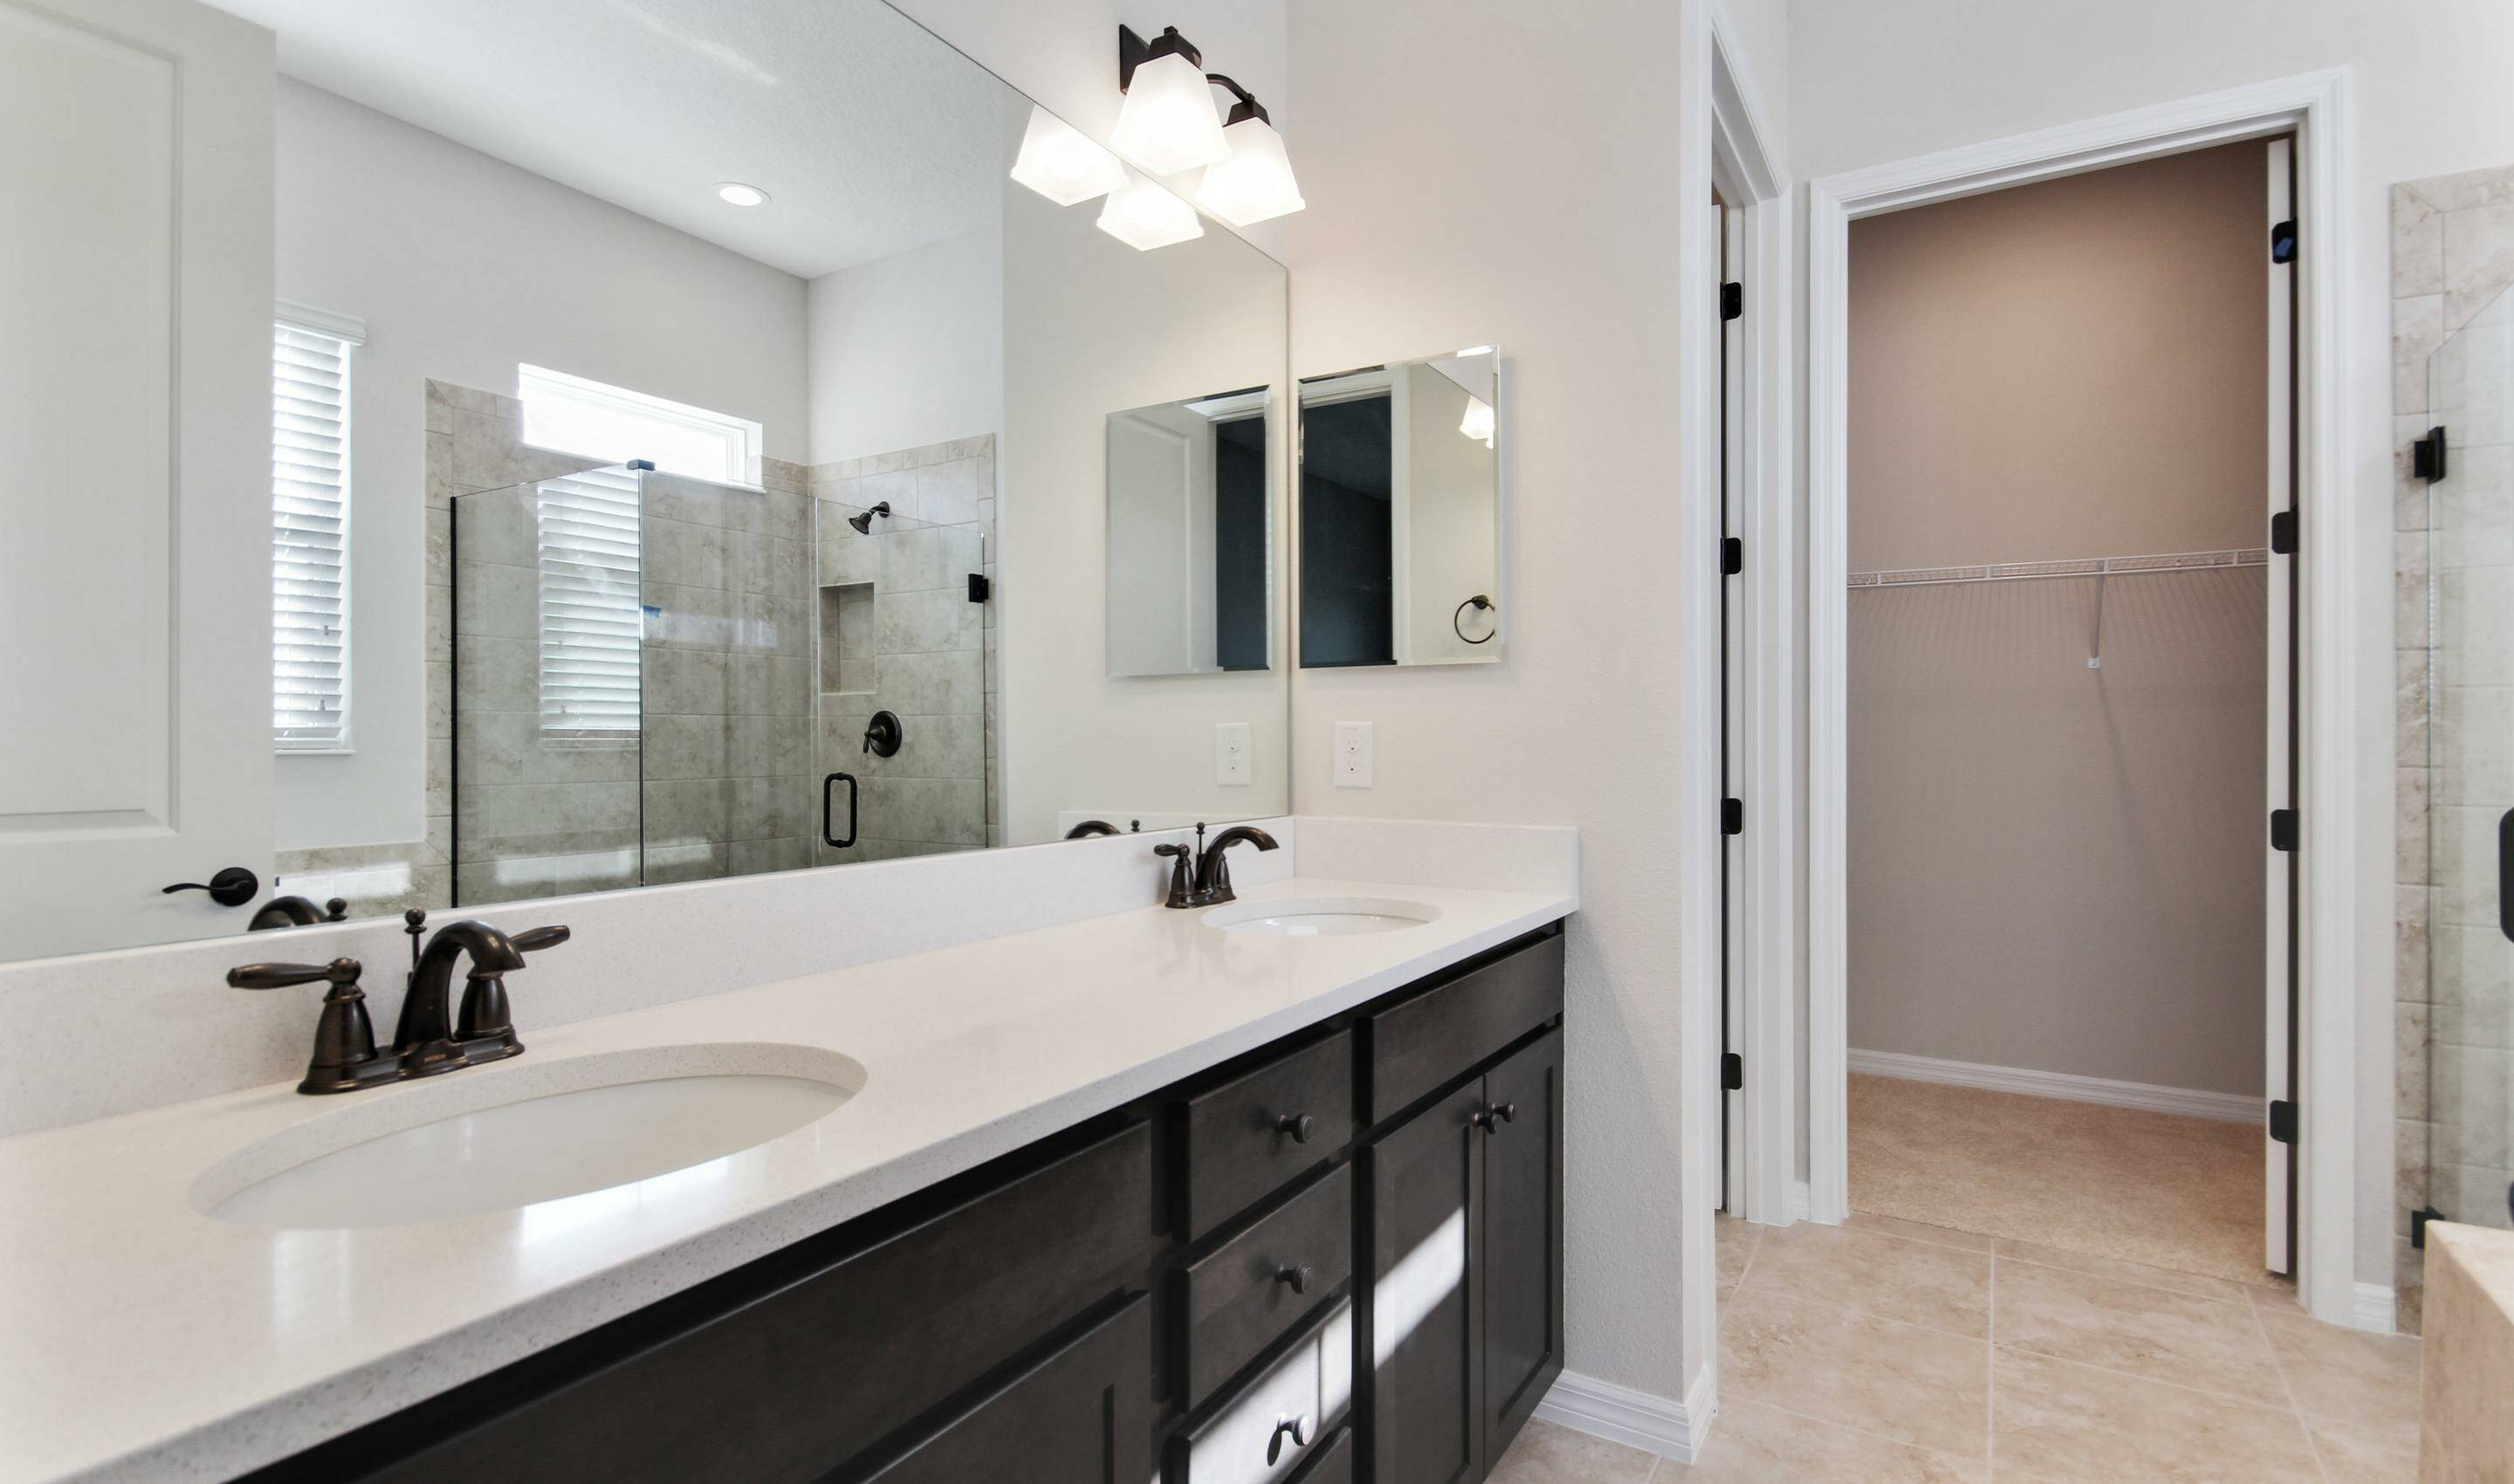 dual sinks owners spa bath in dunmore in four seasons at orlando new homes in orlando florida